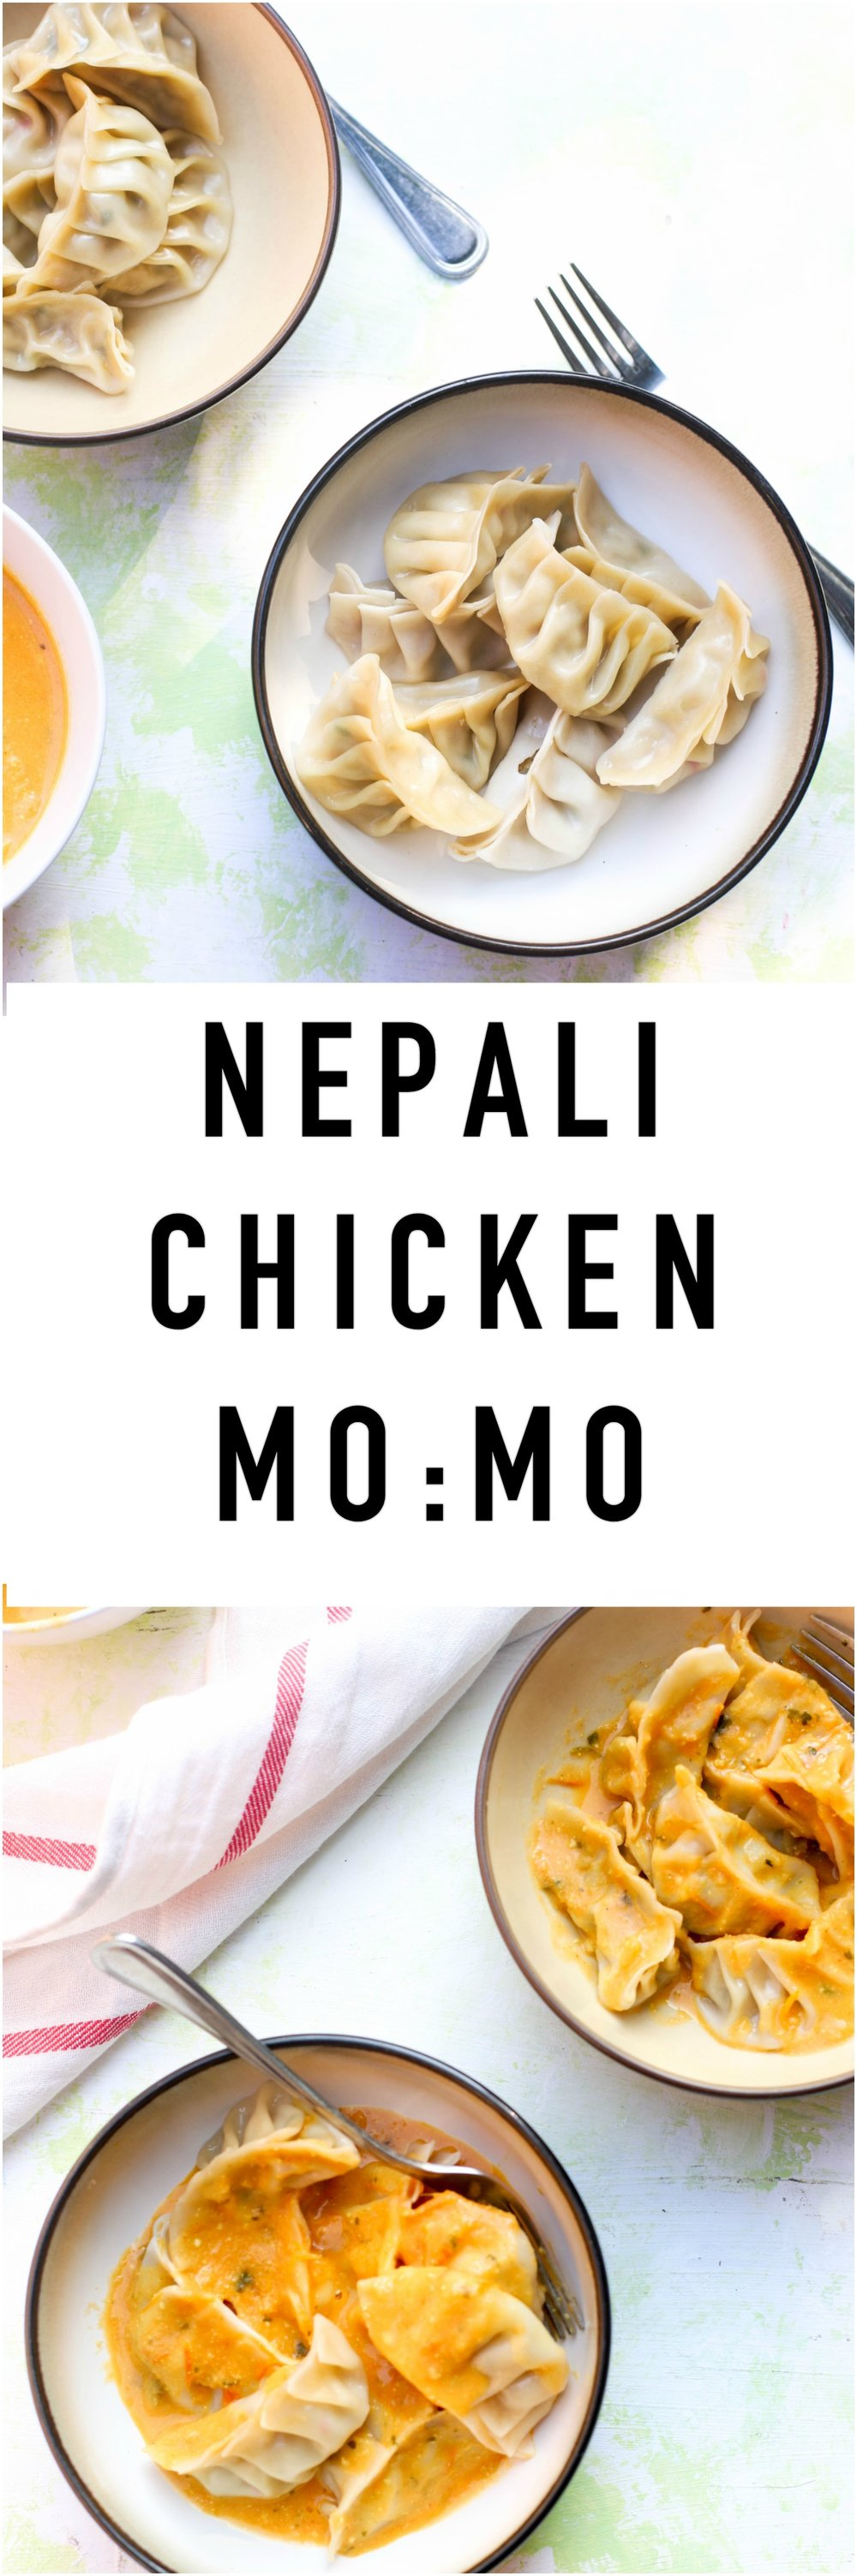 Flavorful & Juicy recipe for Nepali Chicken Mo:Mo (Nepali Dumplings). Step by step recipe and video included.